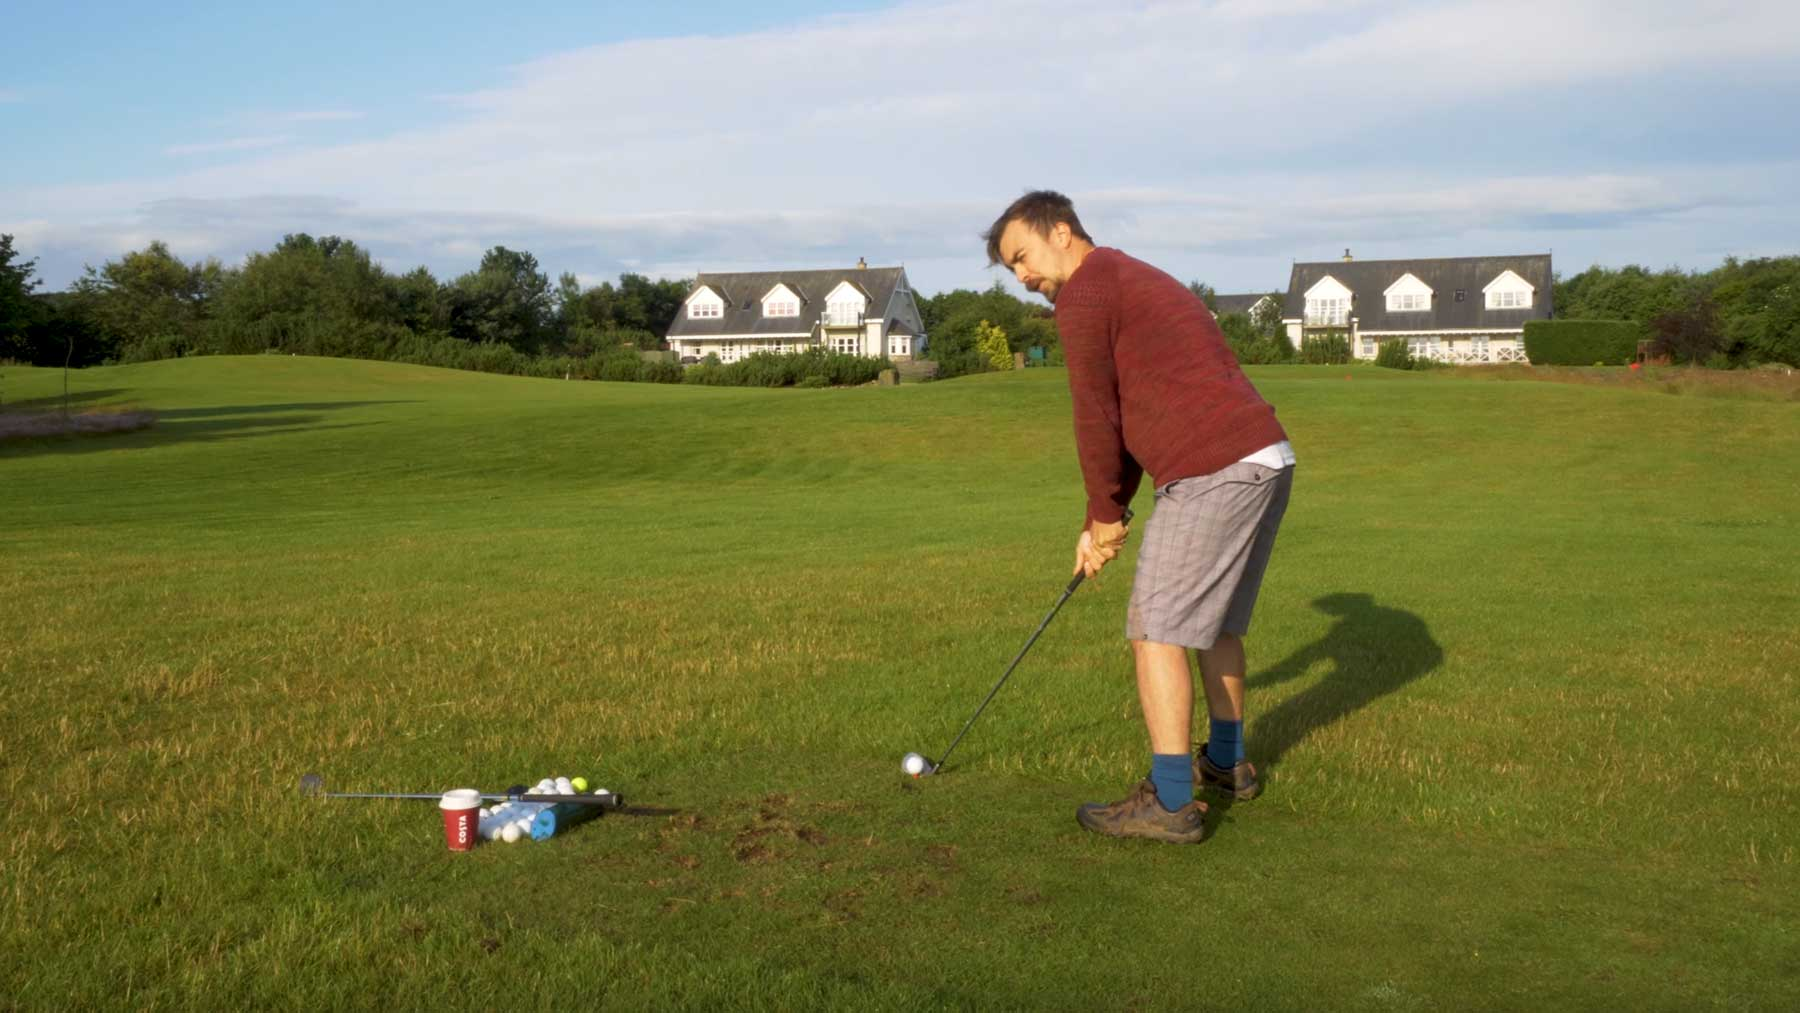 Mike Boyd spendet 1$ pro Golfschlag bis zum Hole-in-One mike-boyd-golf-challenge